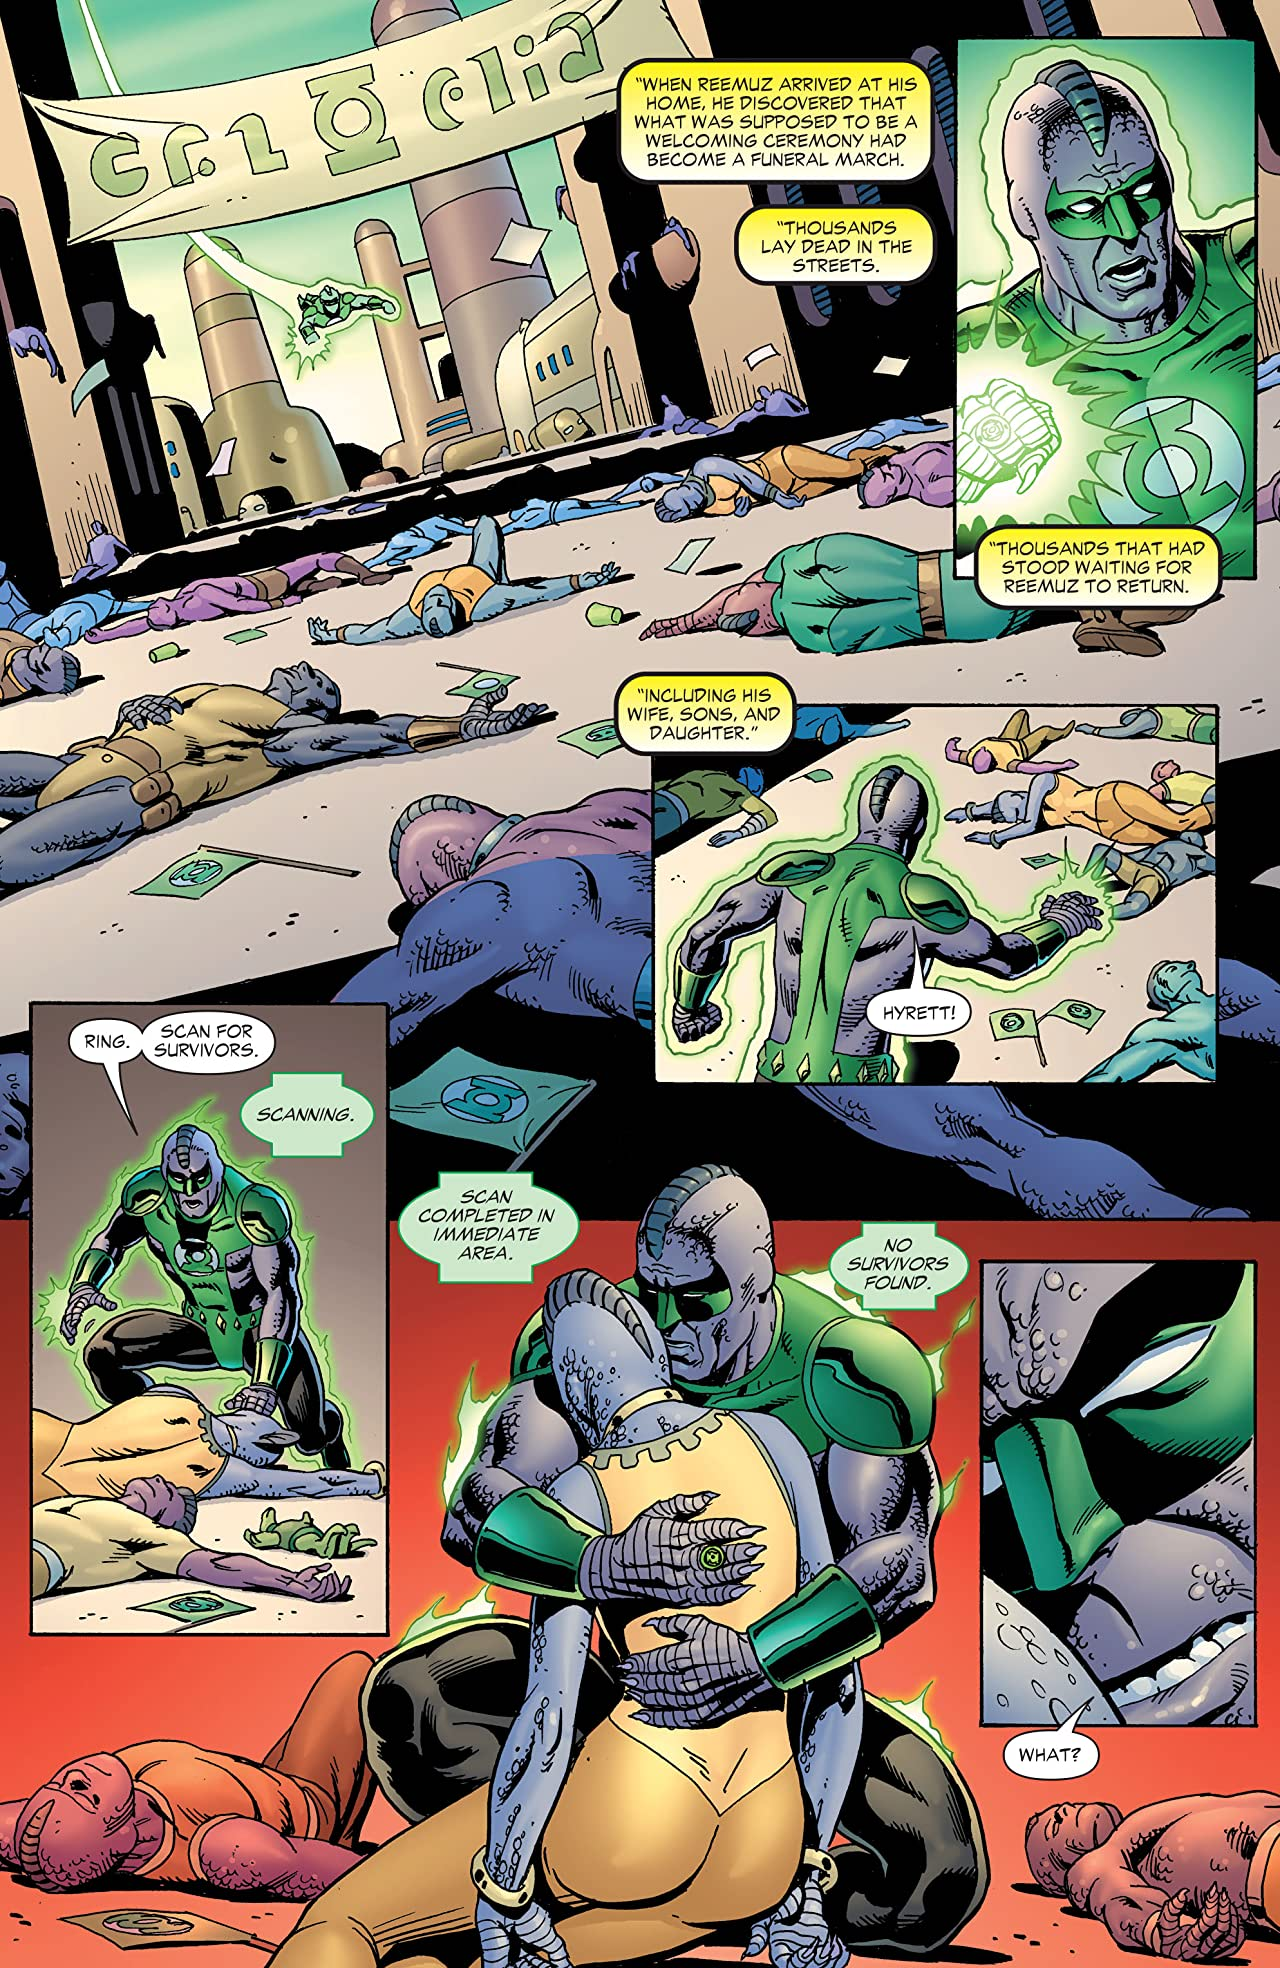 Green Lantern by Geoff Johns Book Three